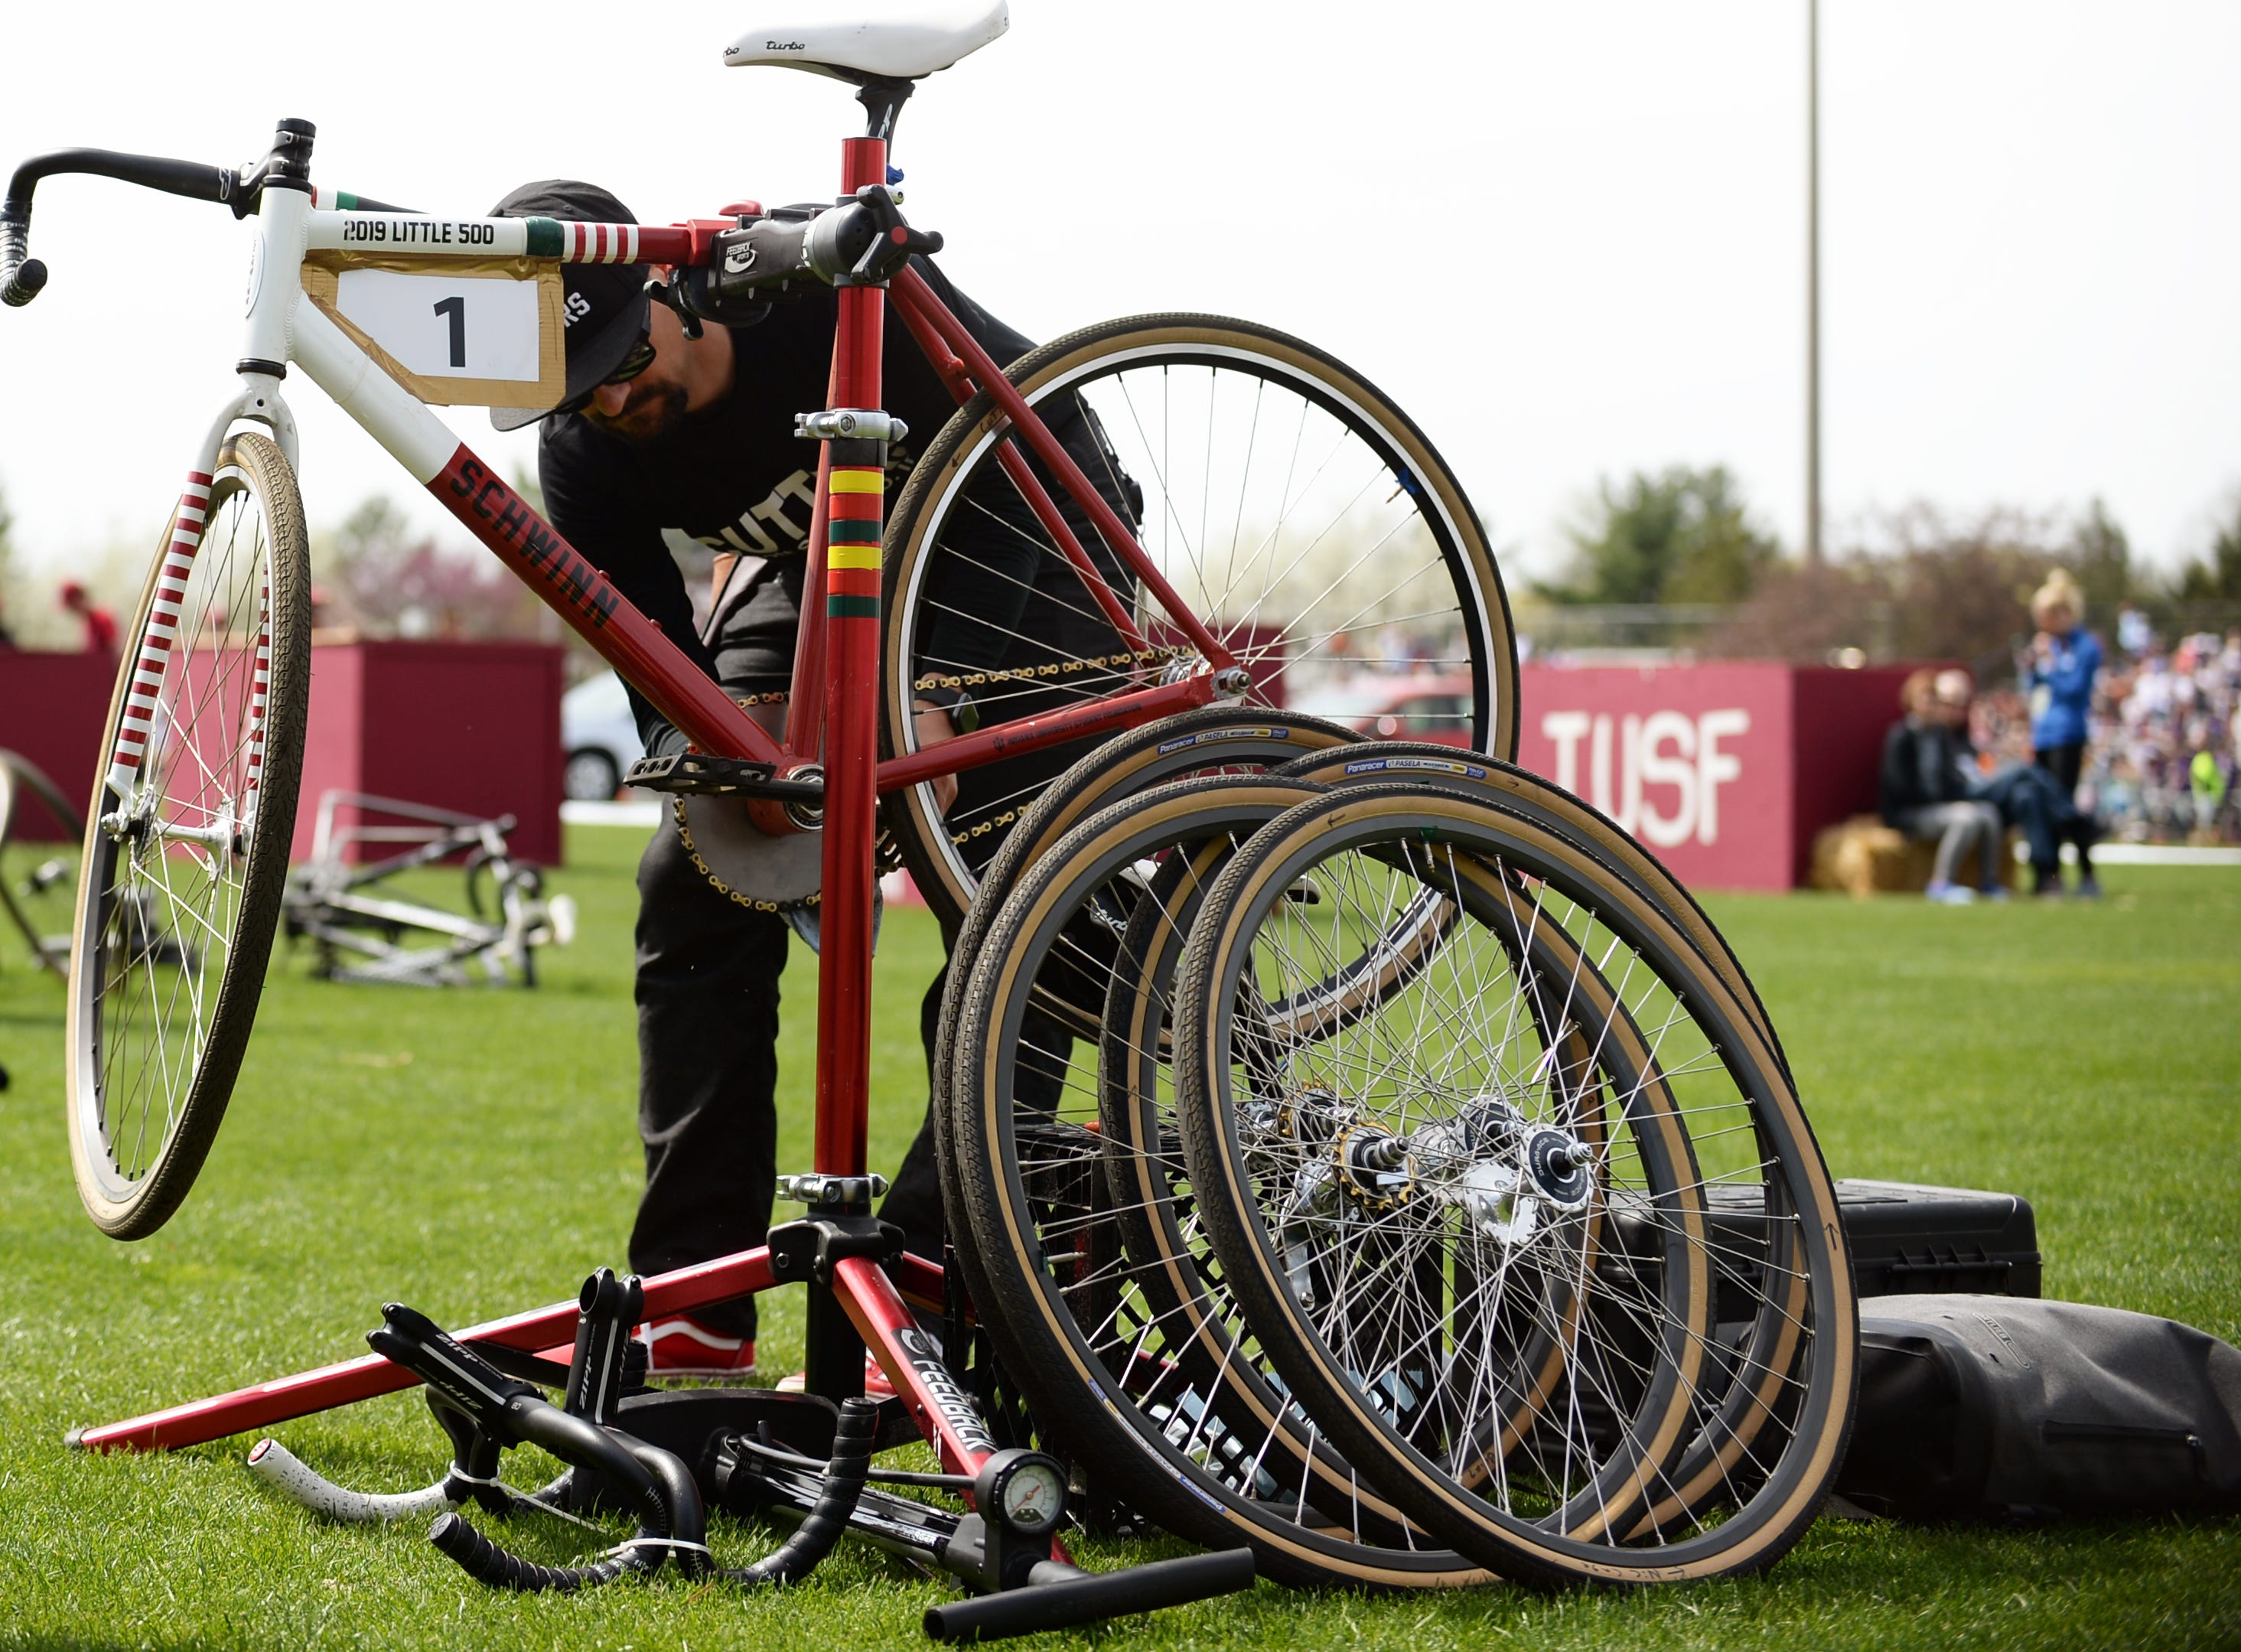 The Cutters mechanic works on a bike during the men's Little 500 at Bill Armstrong Stadium in Bloomington, Ind., on Saturday, April 13, 2019.